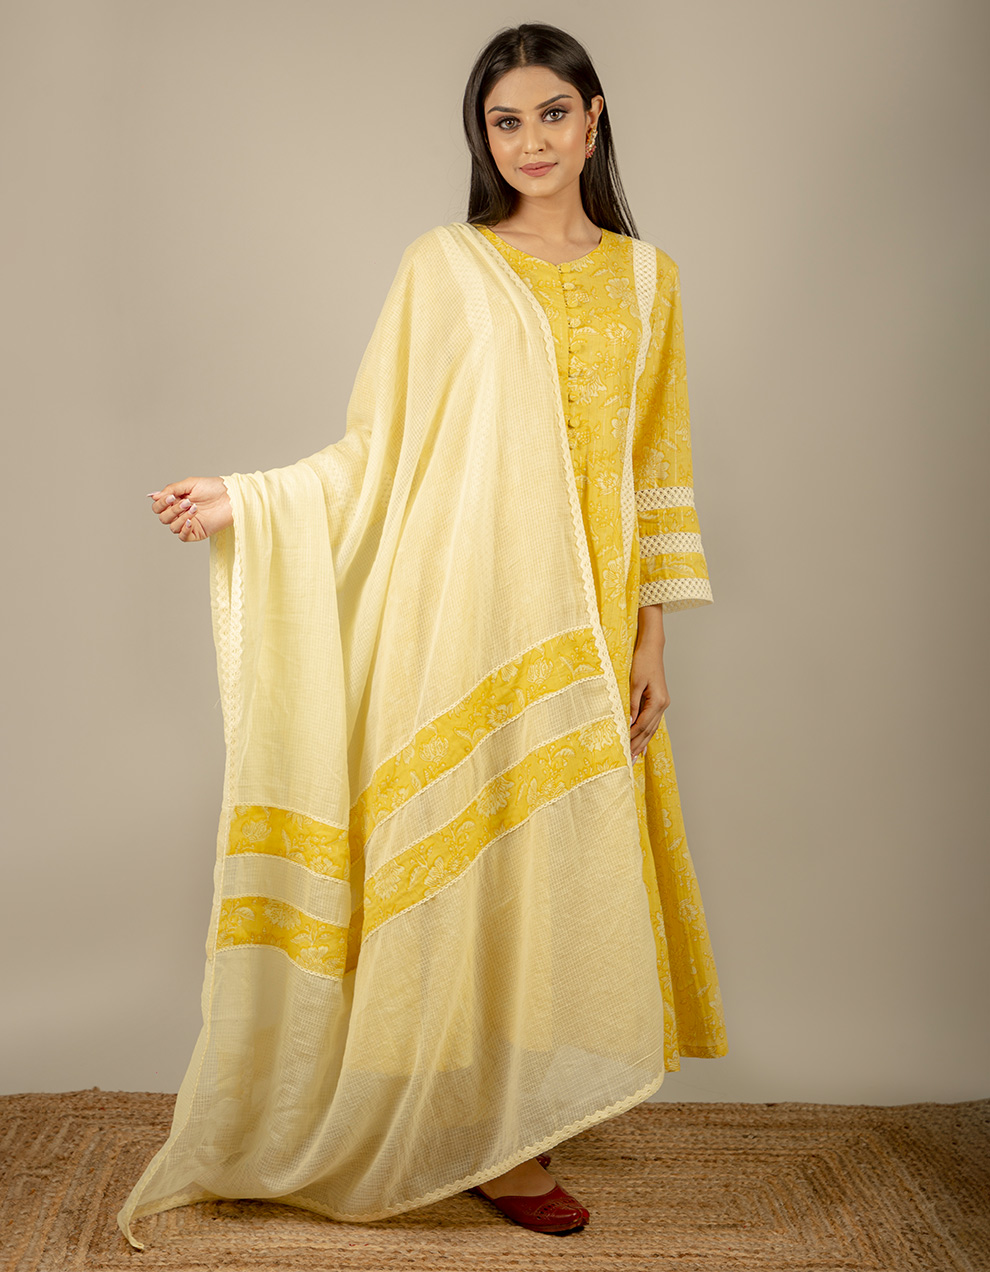 Dupatta with lace